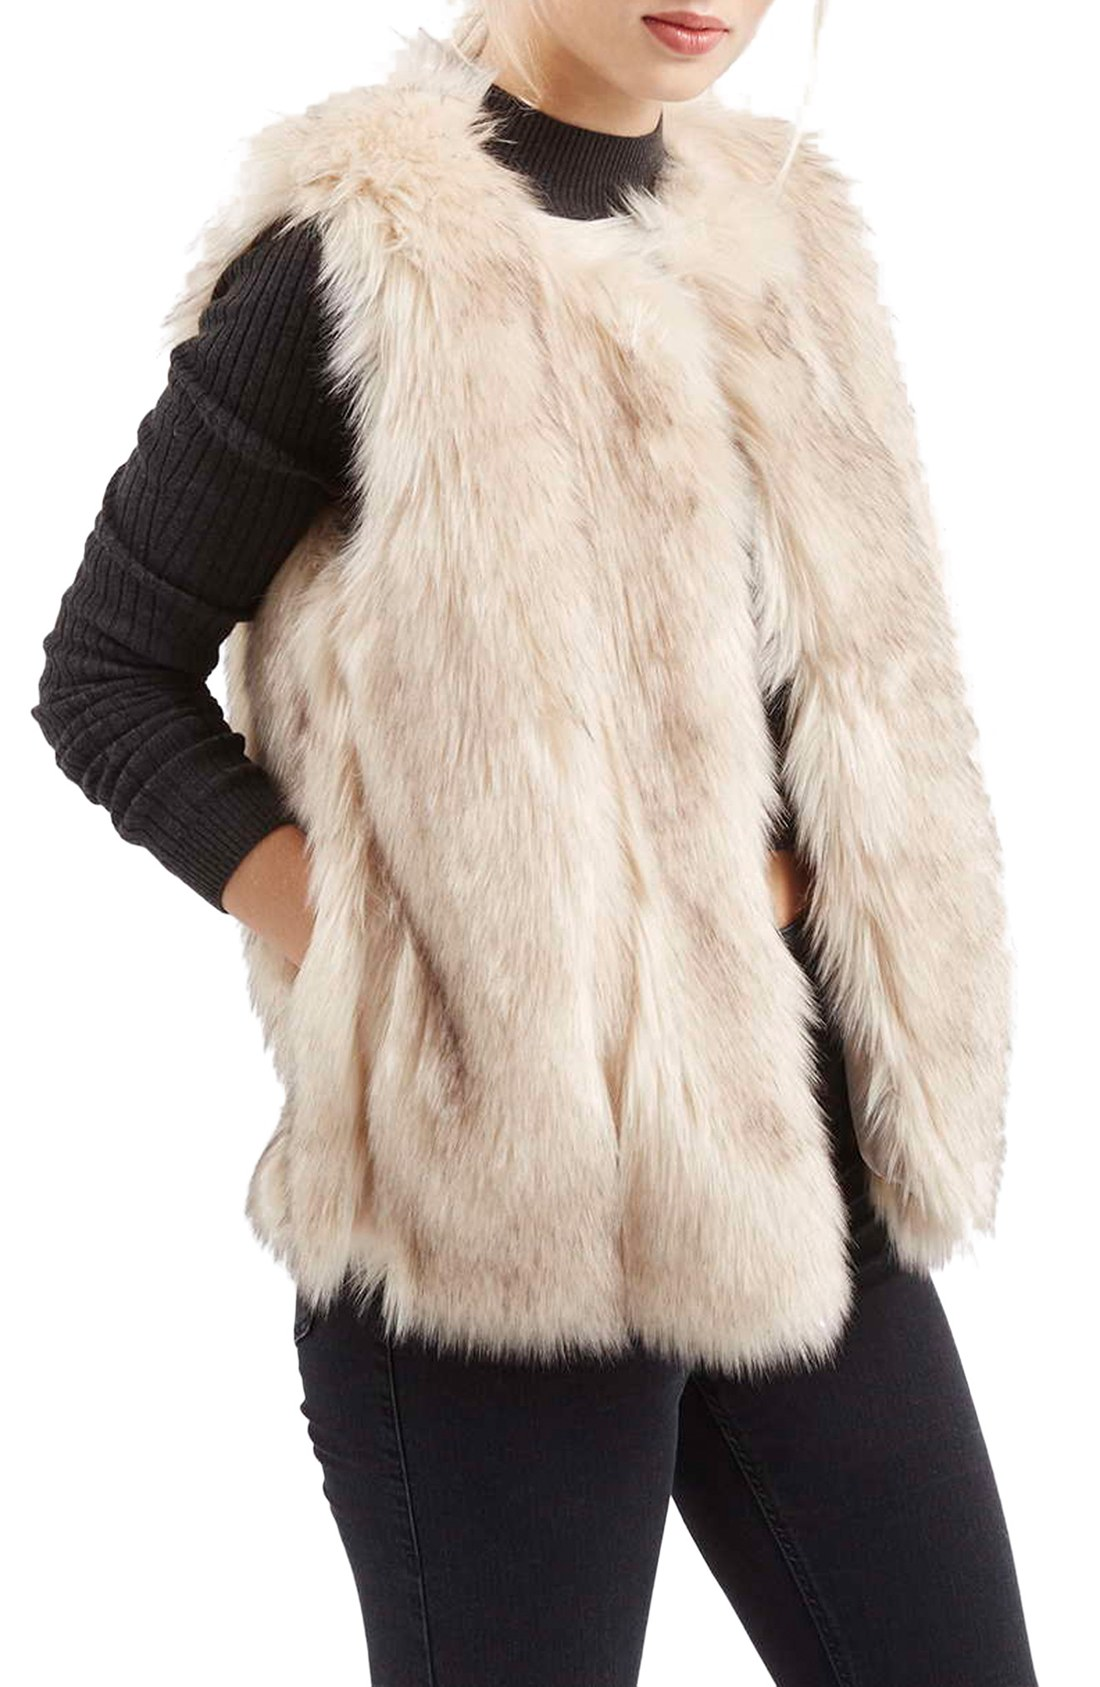 Fashion faux fur vest, Best gift for fashion girls and womens. Shop by Category. Women's Outerwear Coats & Jackets. Women's Shrug Sweaters. Women's Fashion Vests. Dikoaina Fashion Women Faux Fur Waistcoat Short Vest Jacket Coat Sleeveless Outwear. by Dikoaina. $ $ 18 99 Prime.